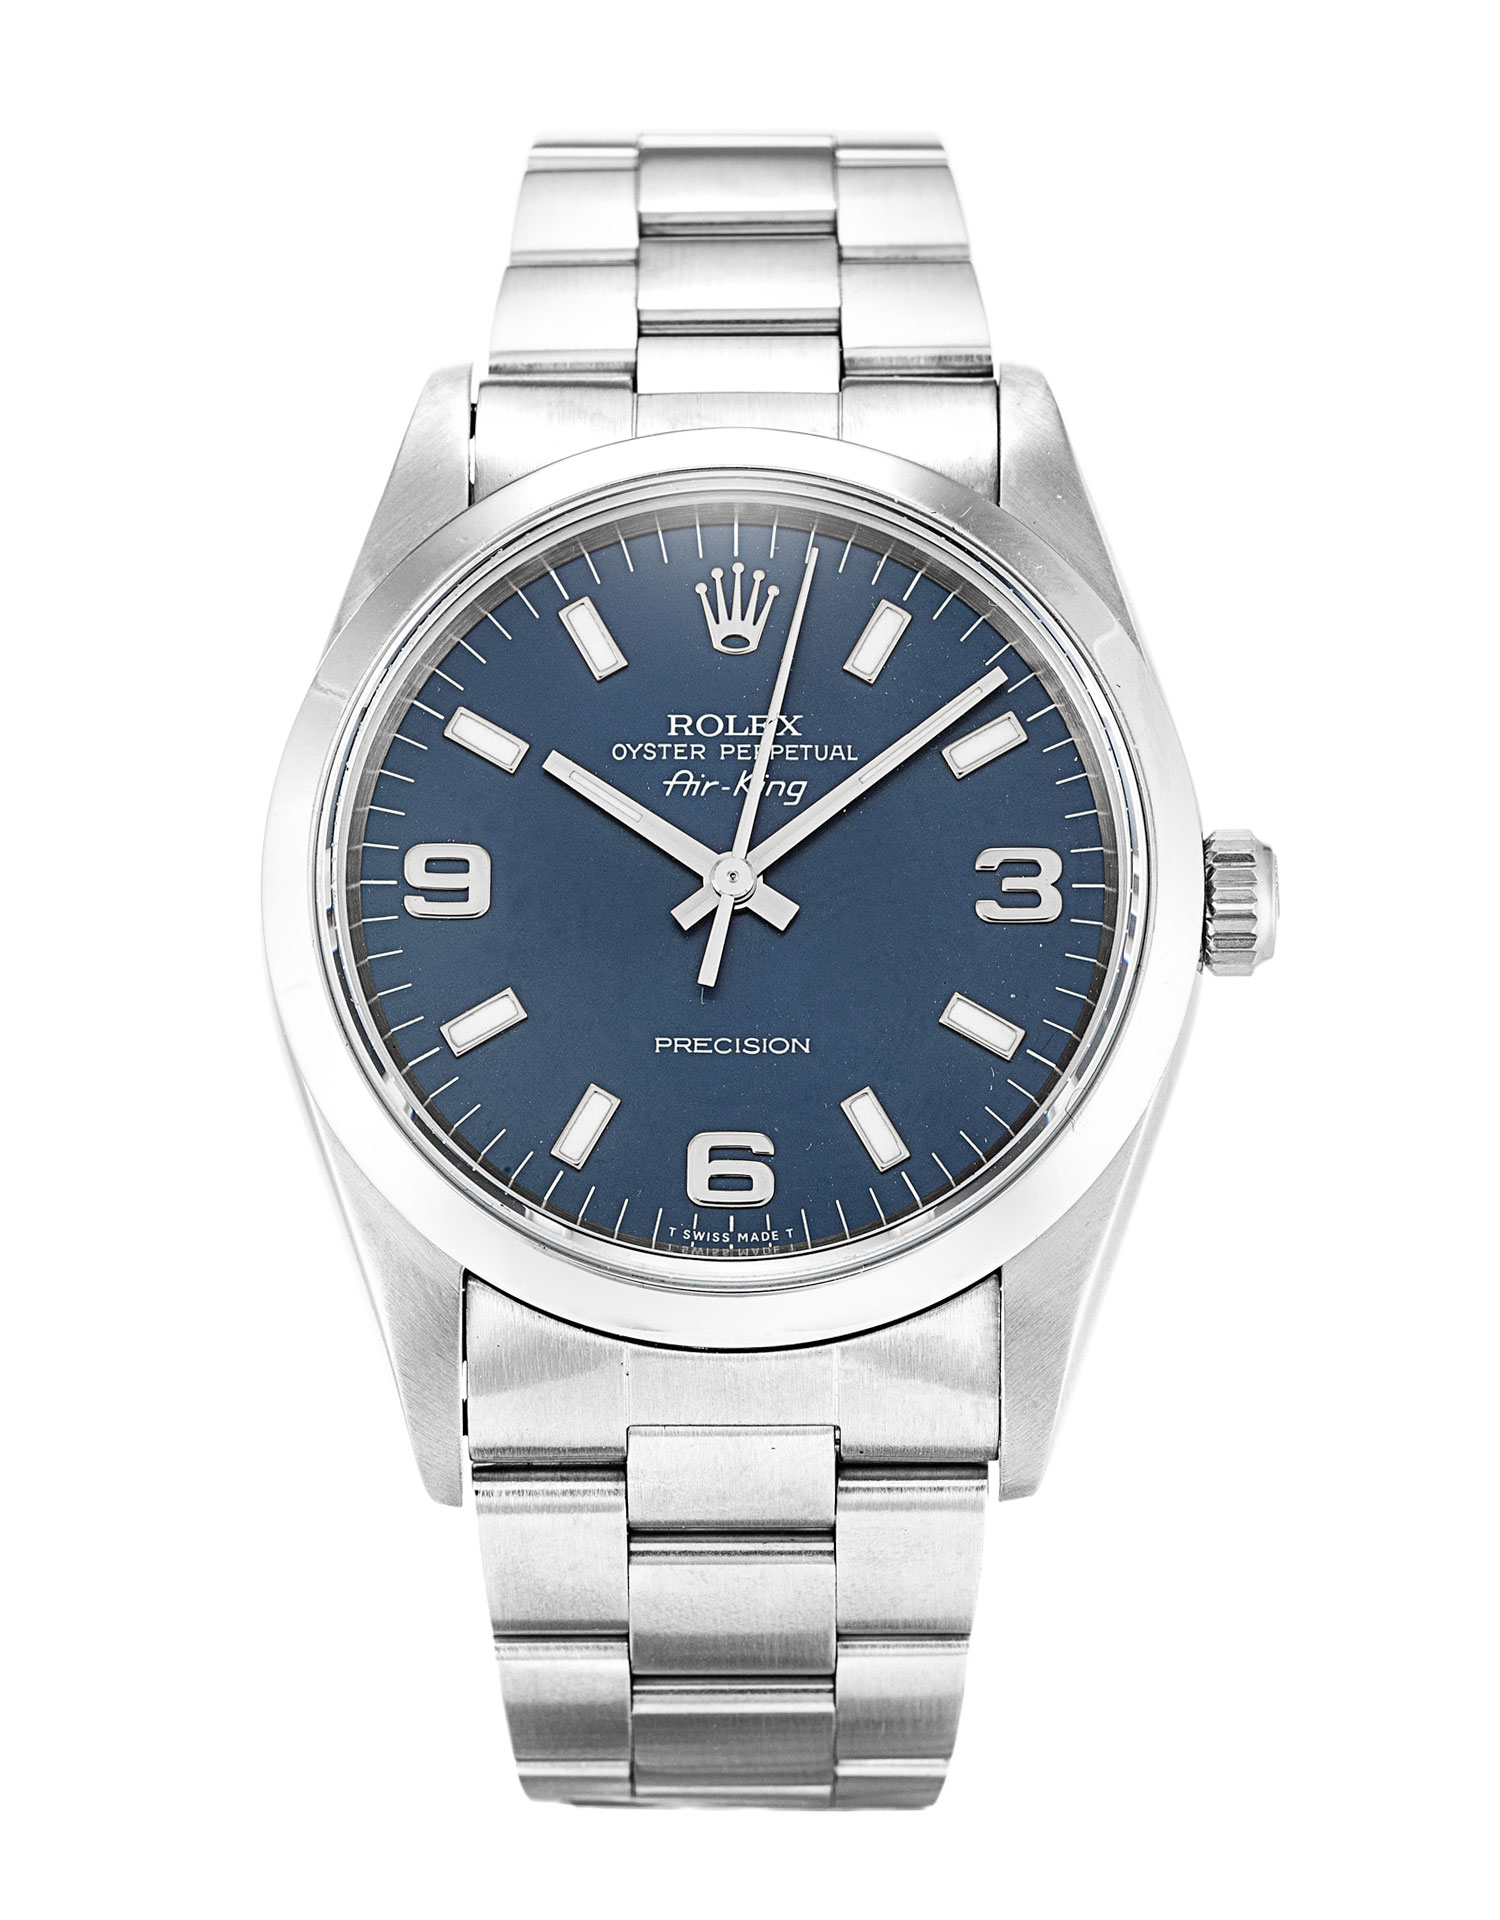 Rolex Air-king 14000 Unisex 34 Mm Steel Case Automatic Movement – iapac.to